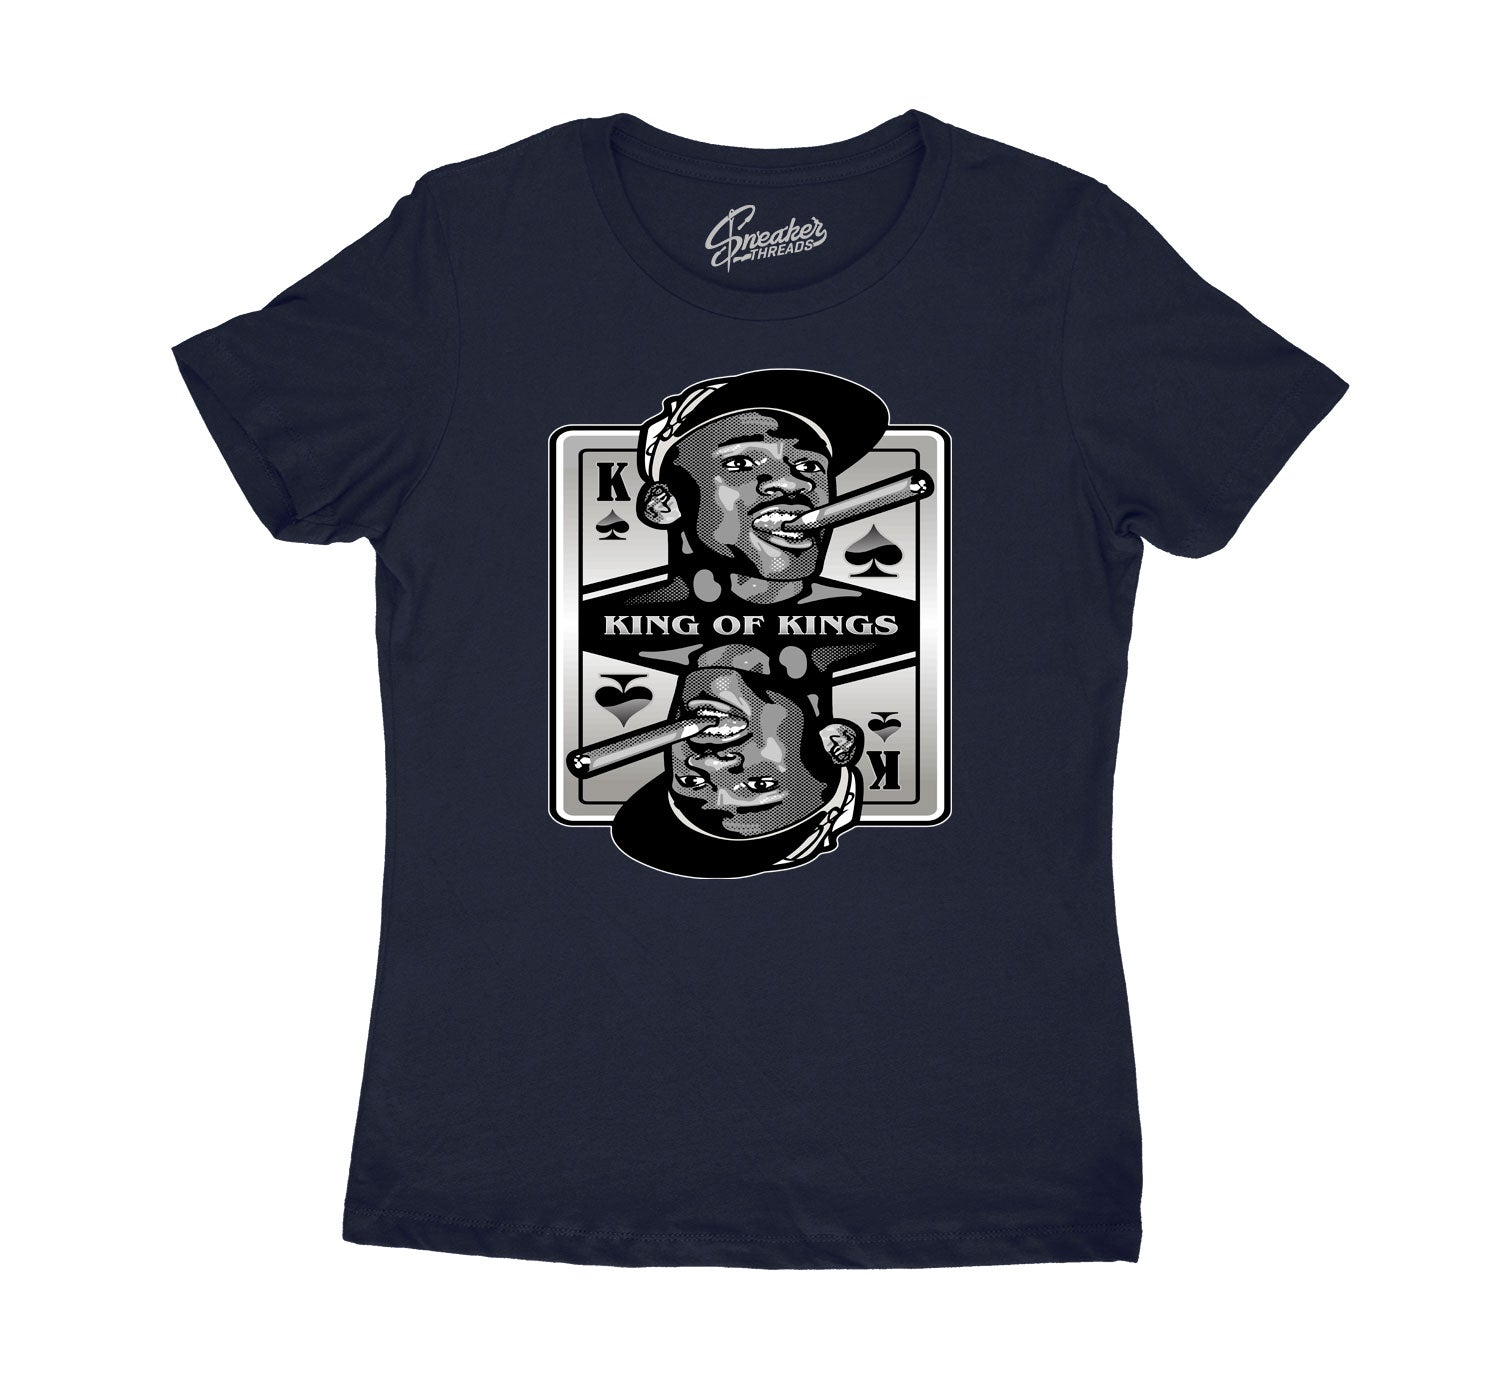 Womens tee collection to match the Jordan 3 midnight navy sneaker collection